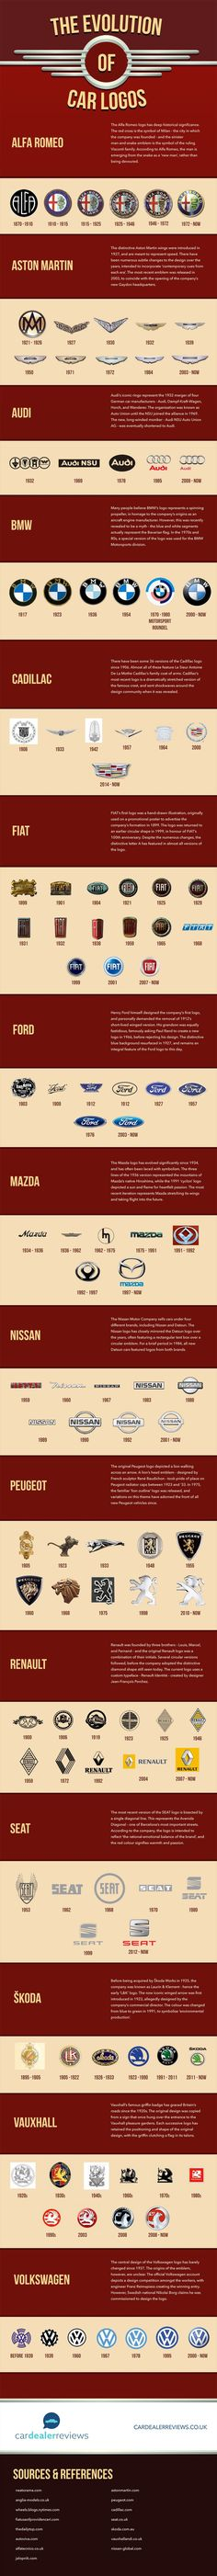 This is shows the evolution of each car logo since its first design